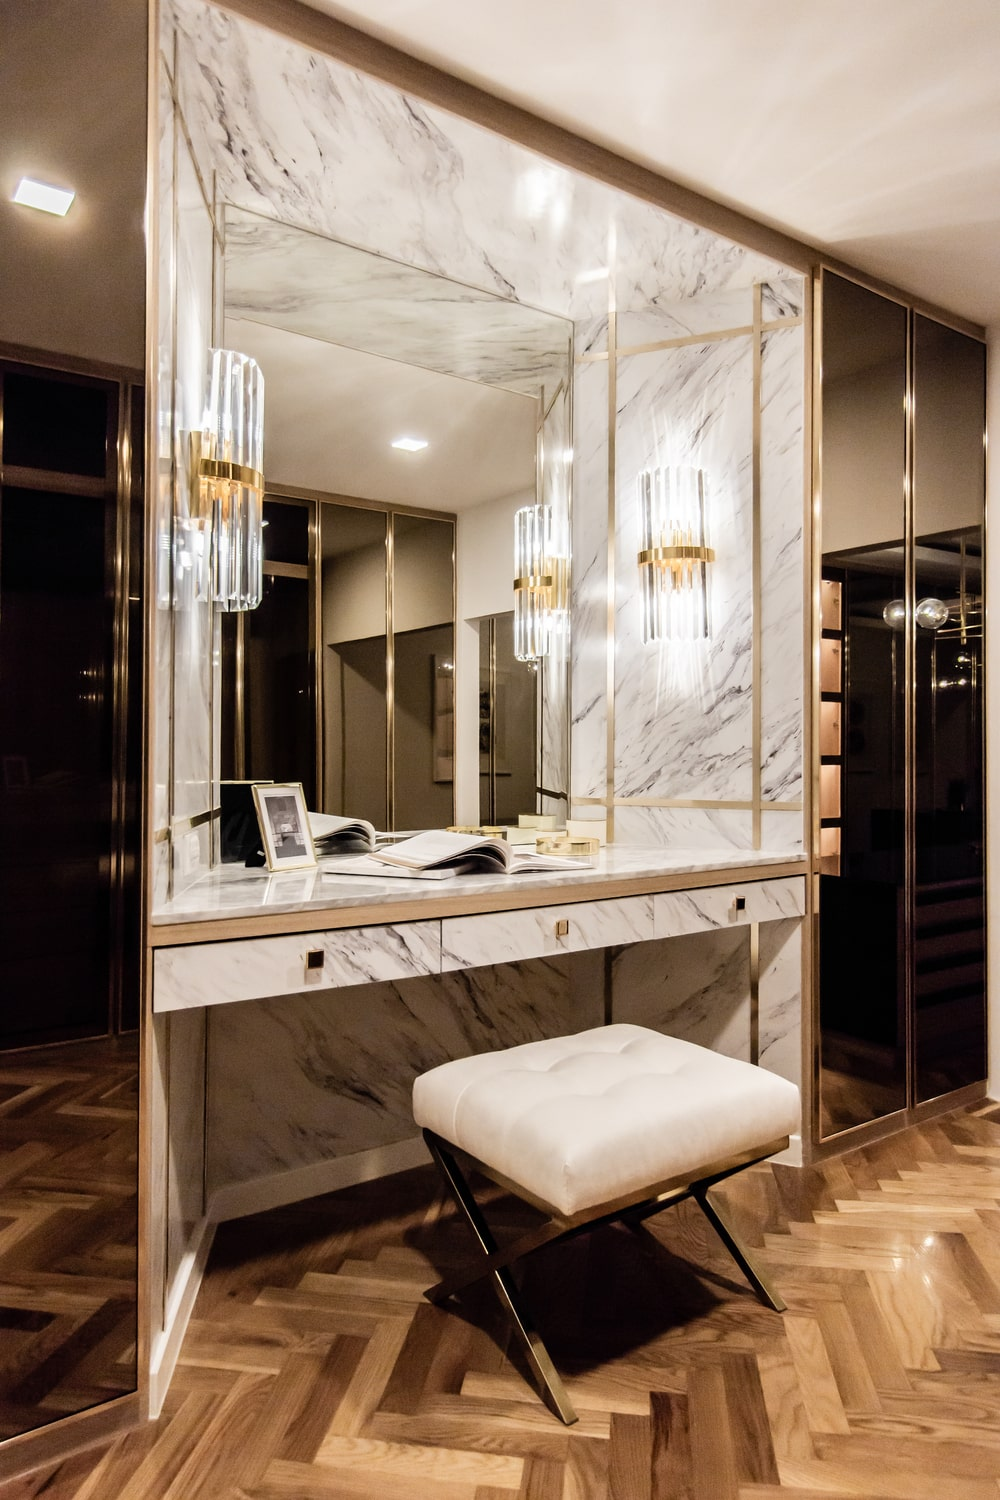 This is a close look at the luxurious vanity area within the walk-in closet of the house with a large mirror lit by sconces.